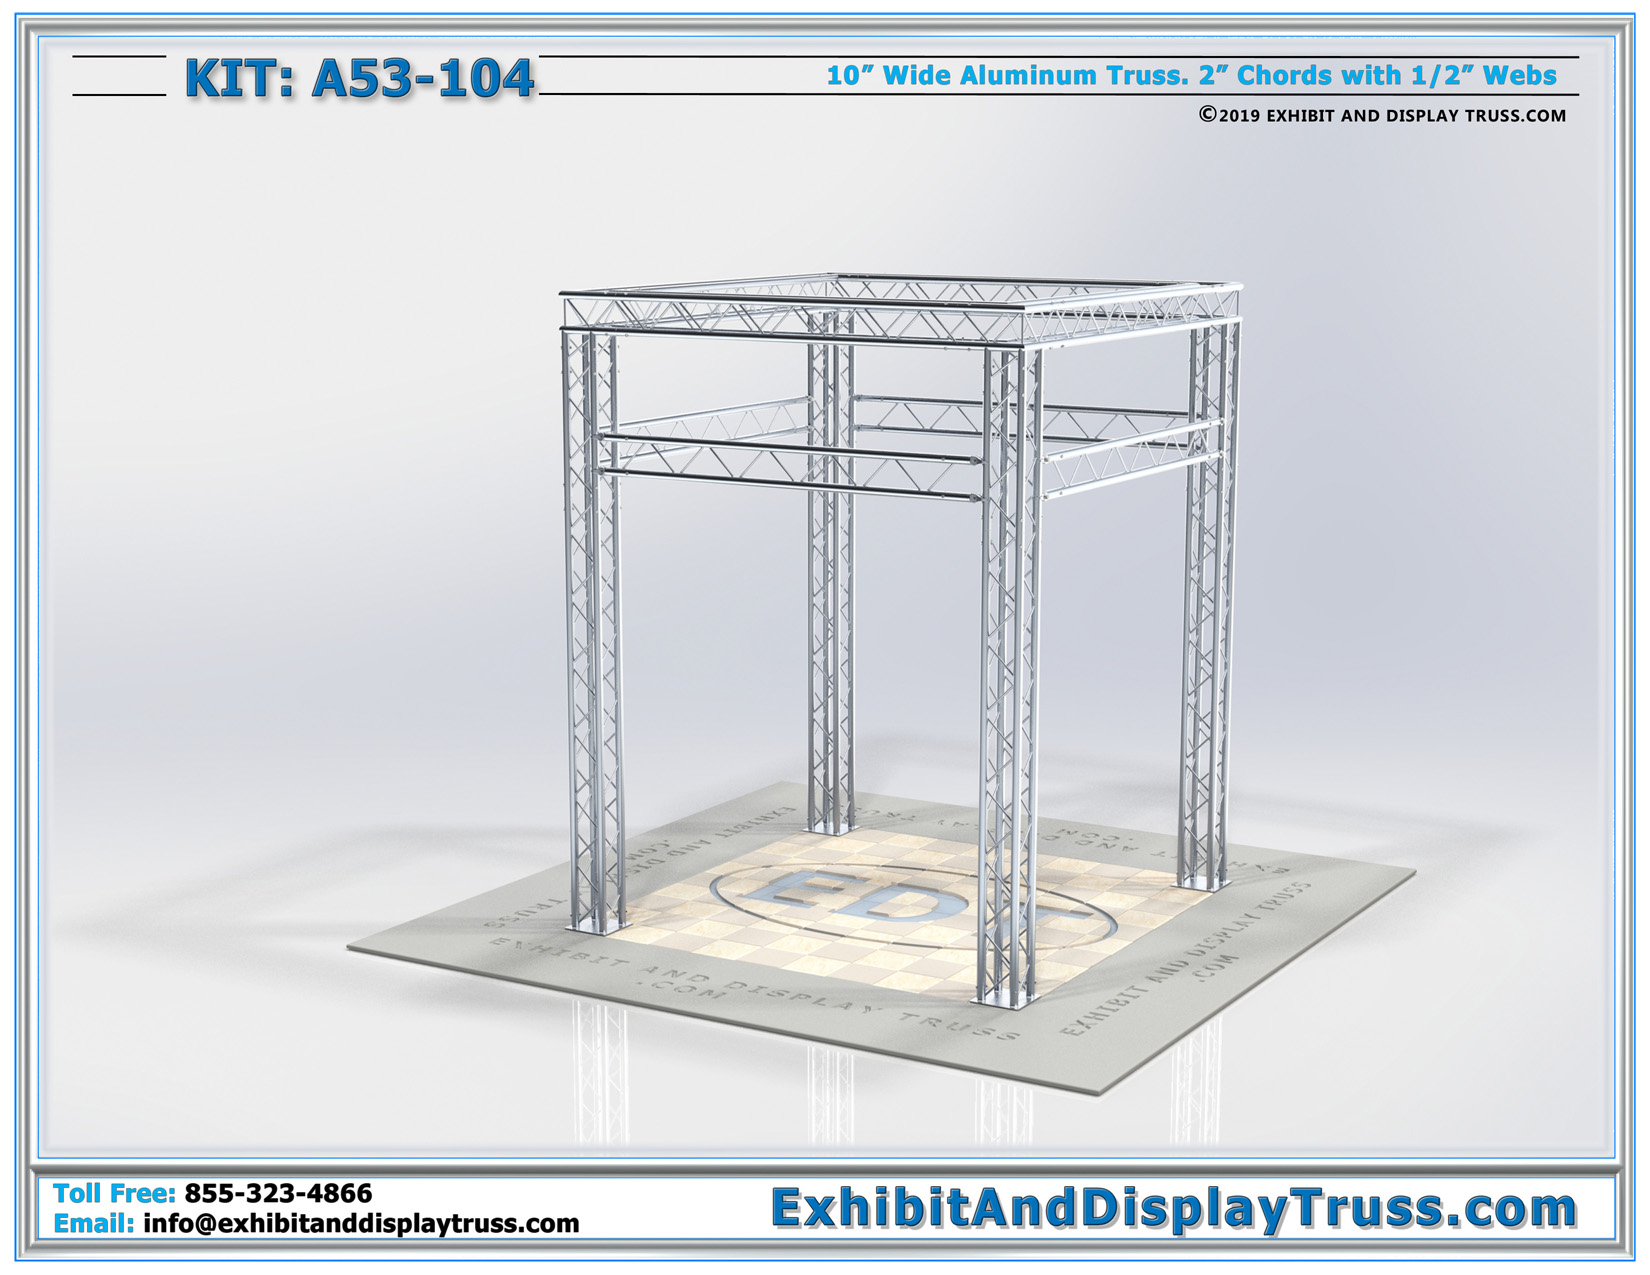 Kit: A53-104 / Modular Truss Perimeter Booth with Decorative Overhead 360 Degree Signage Area